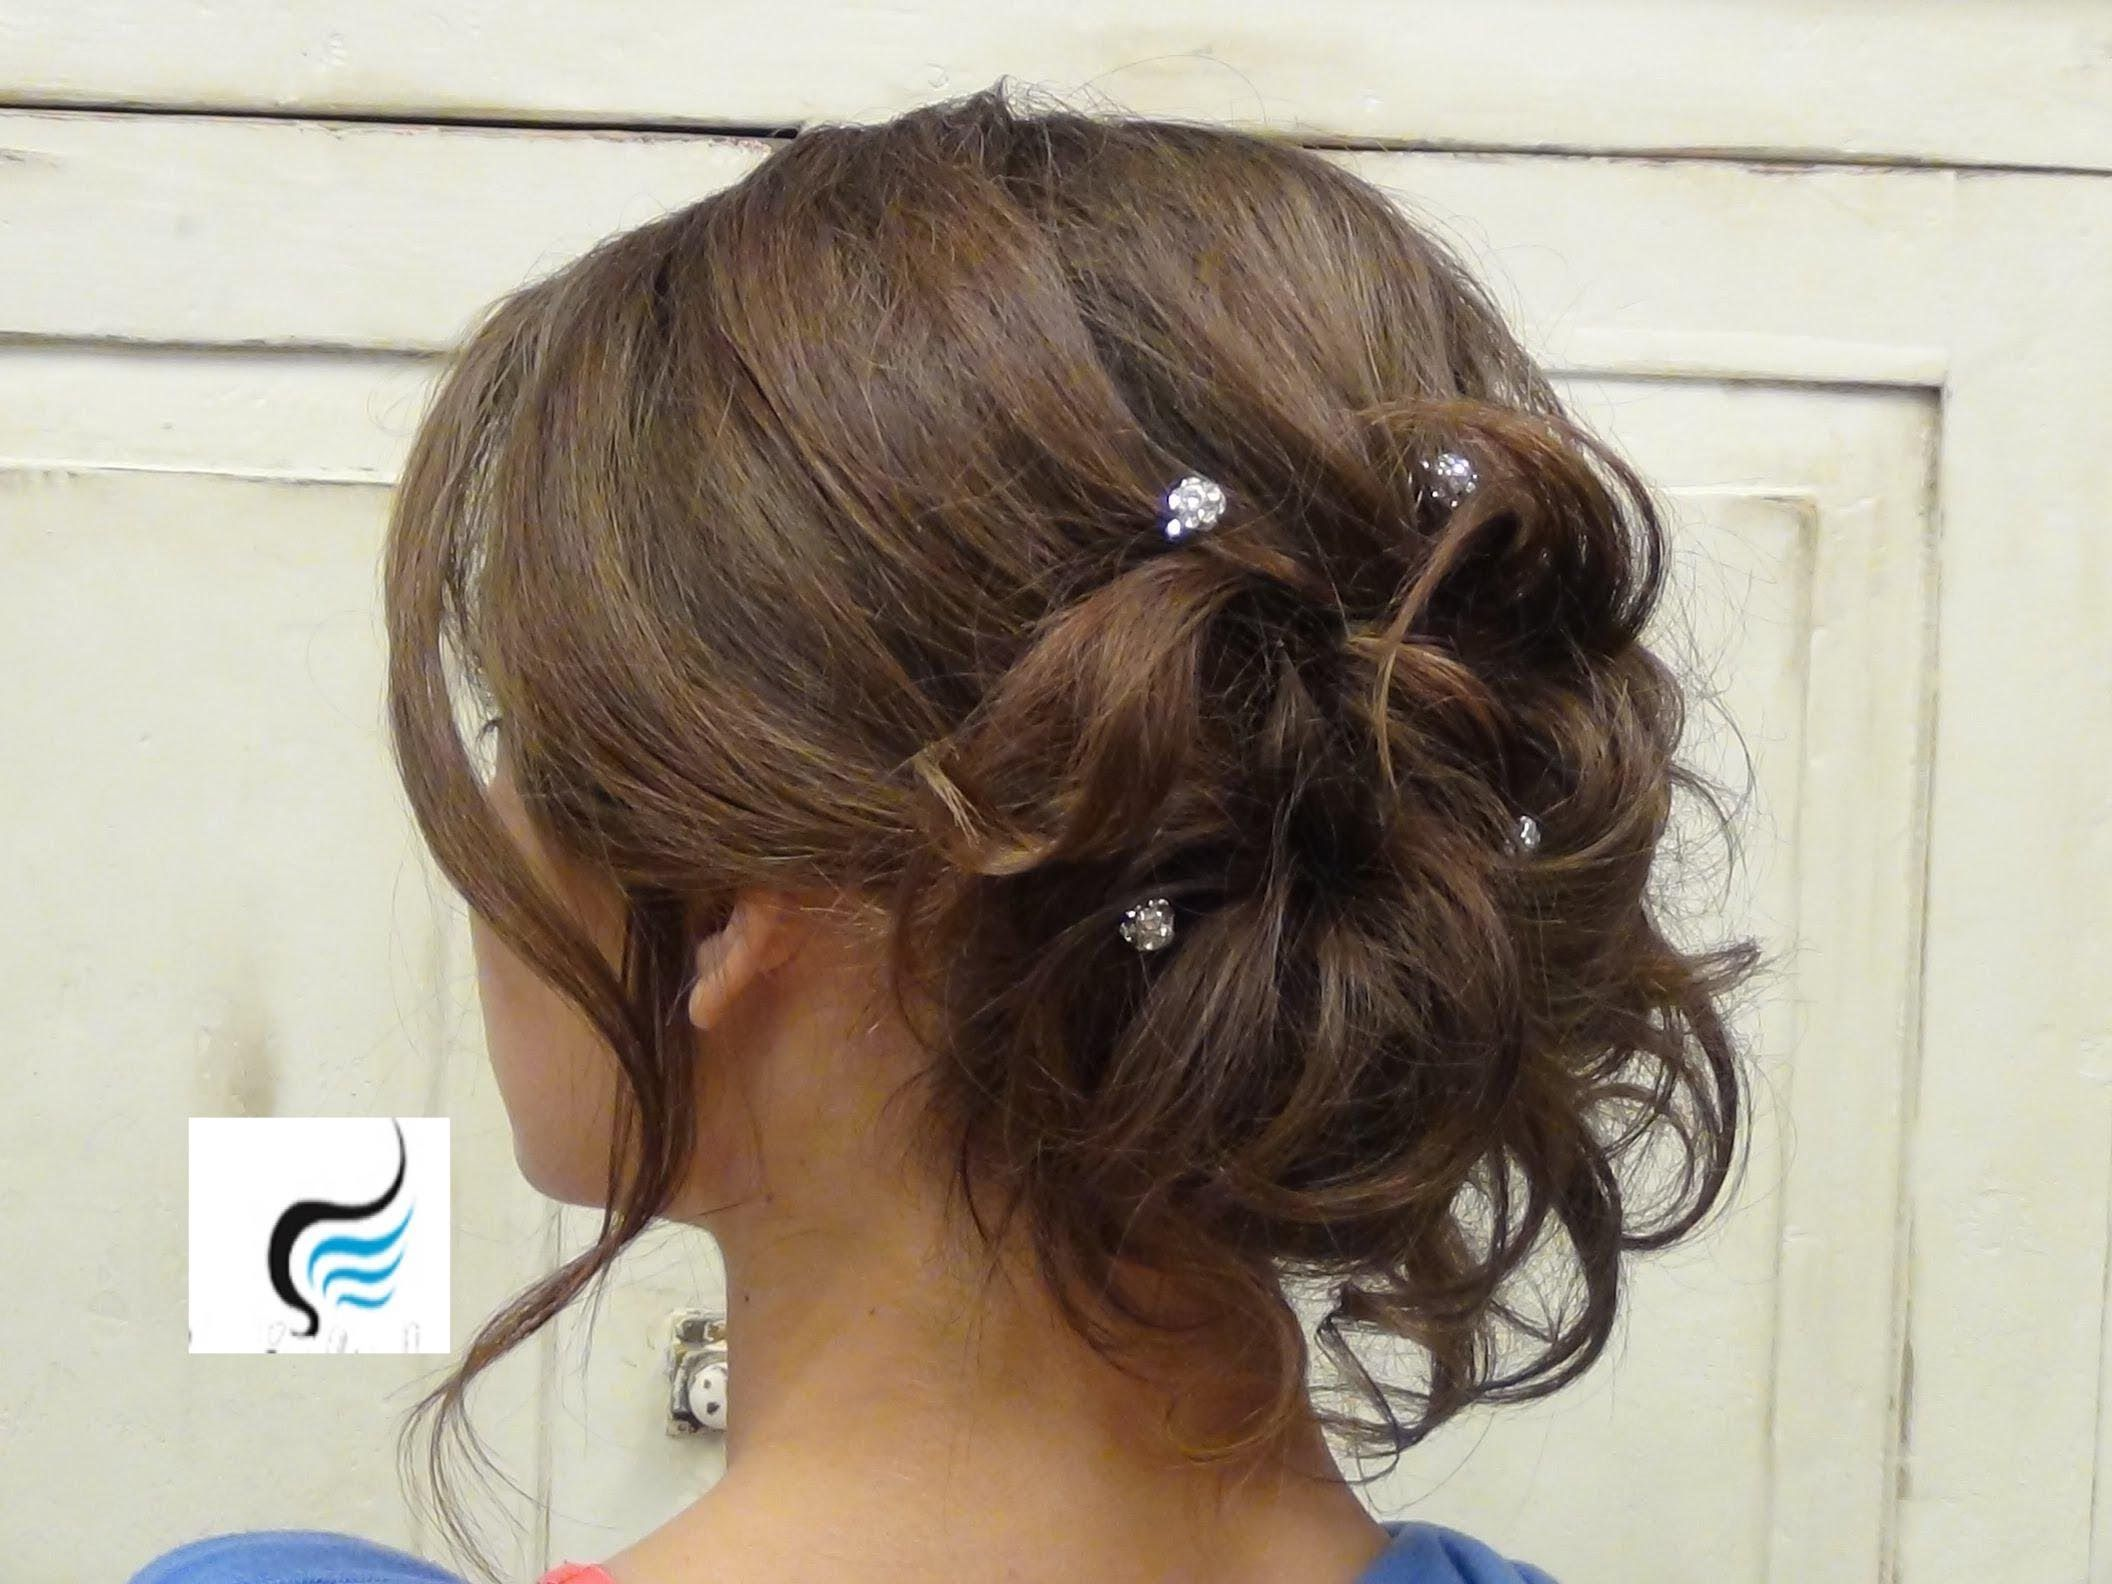 Hairstyles For Long Hair Put Up Hairstyles Hairstylesforlonghair Long Hair Updo Long Hair Styles Curled Updo